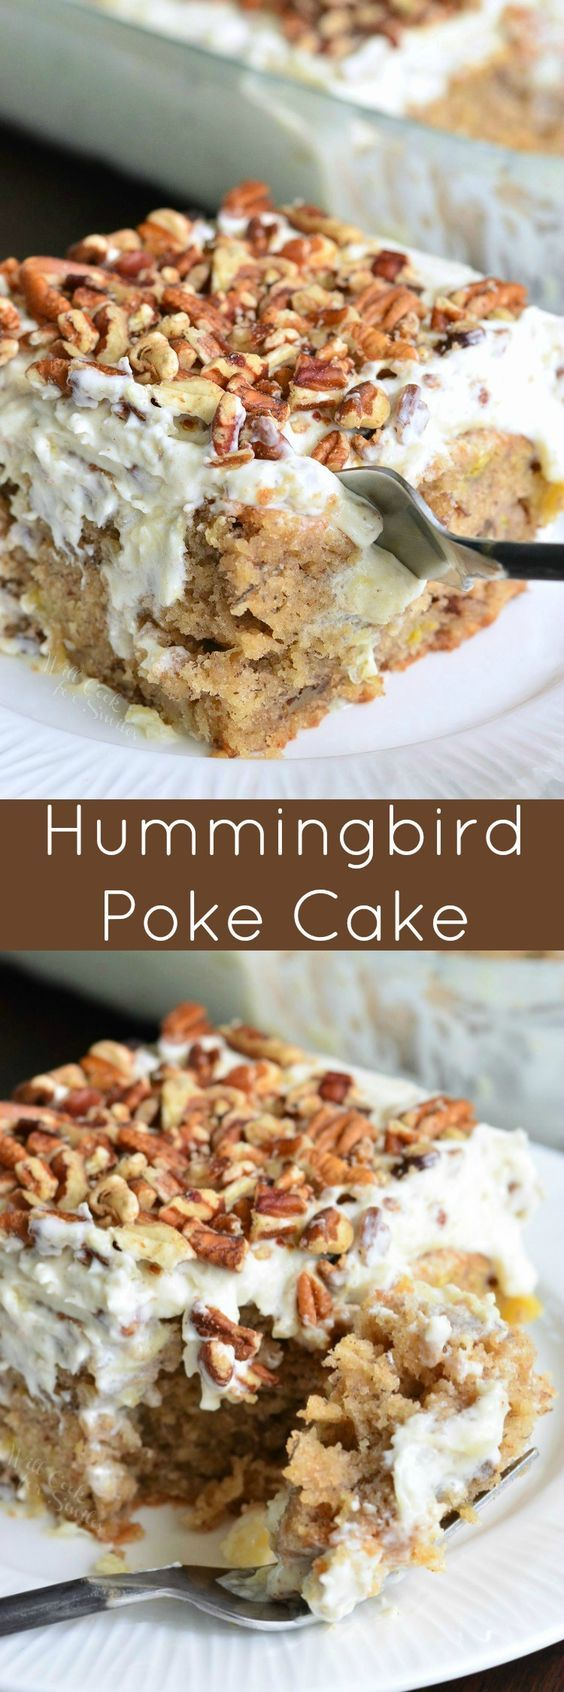 Hummingbird Poke Cake. This version of a Hummingbird cake is so easy and extra moist from a layer of sweet, creamy sauce.